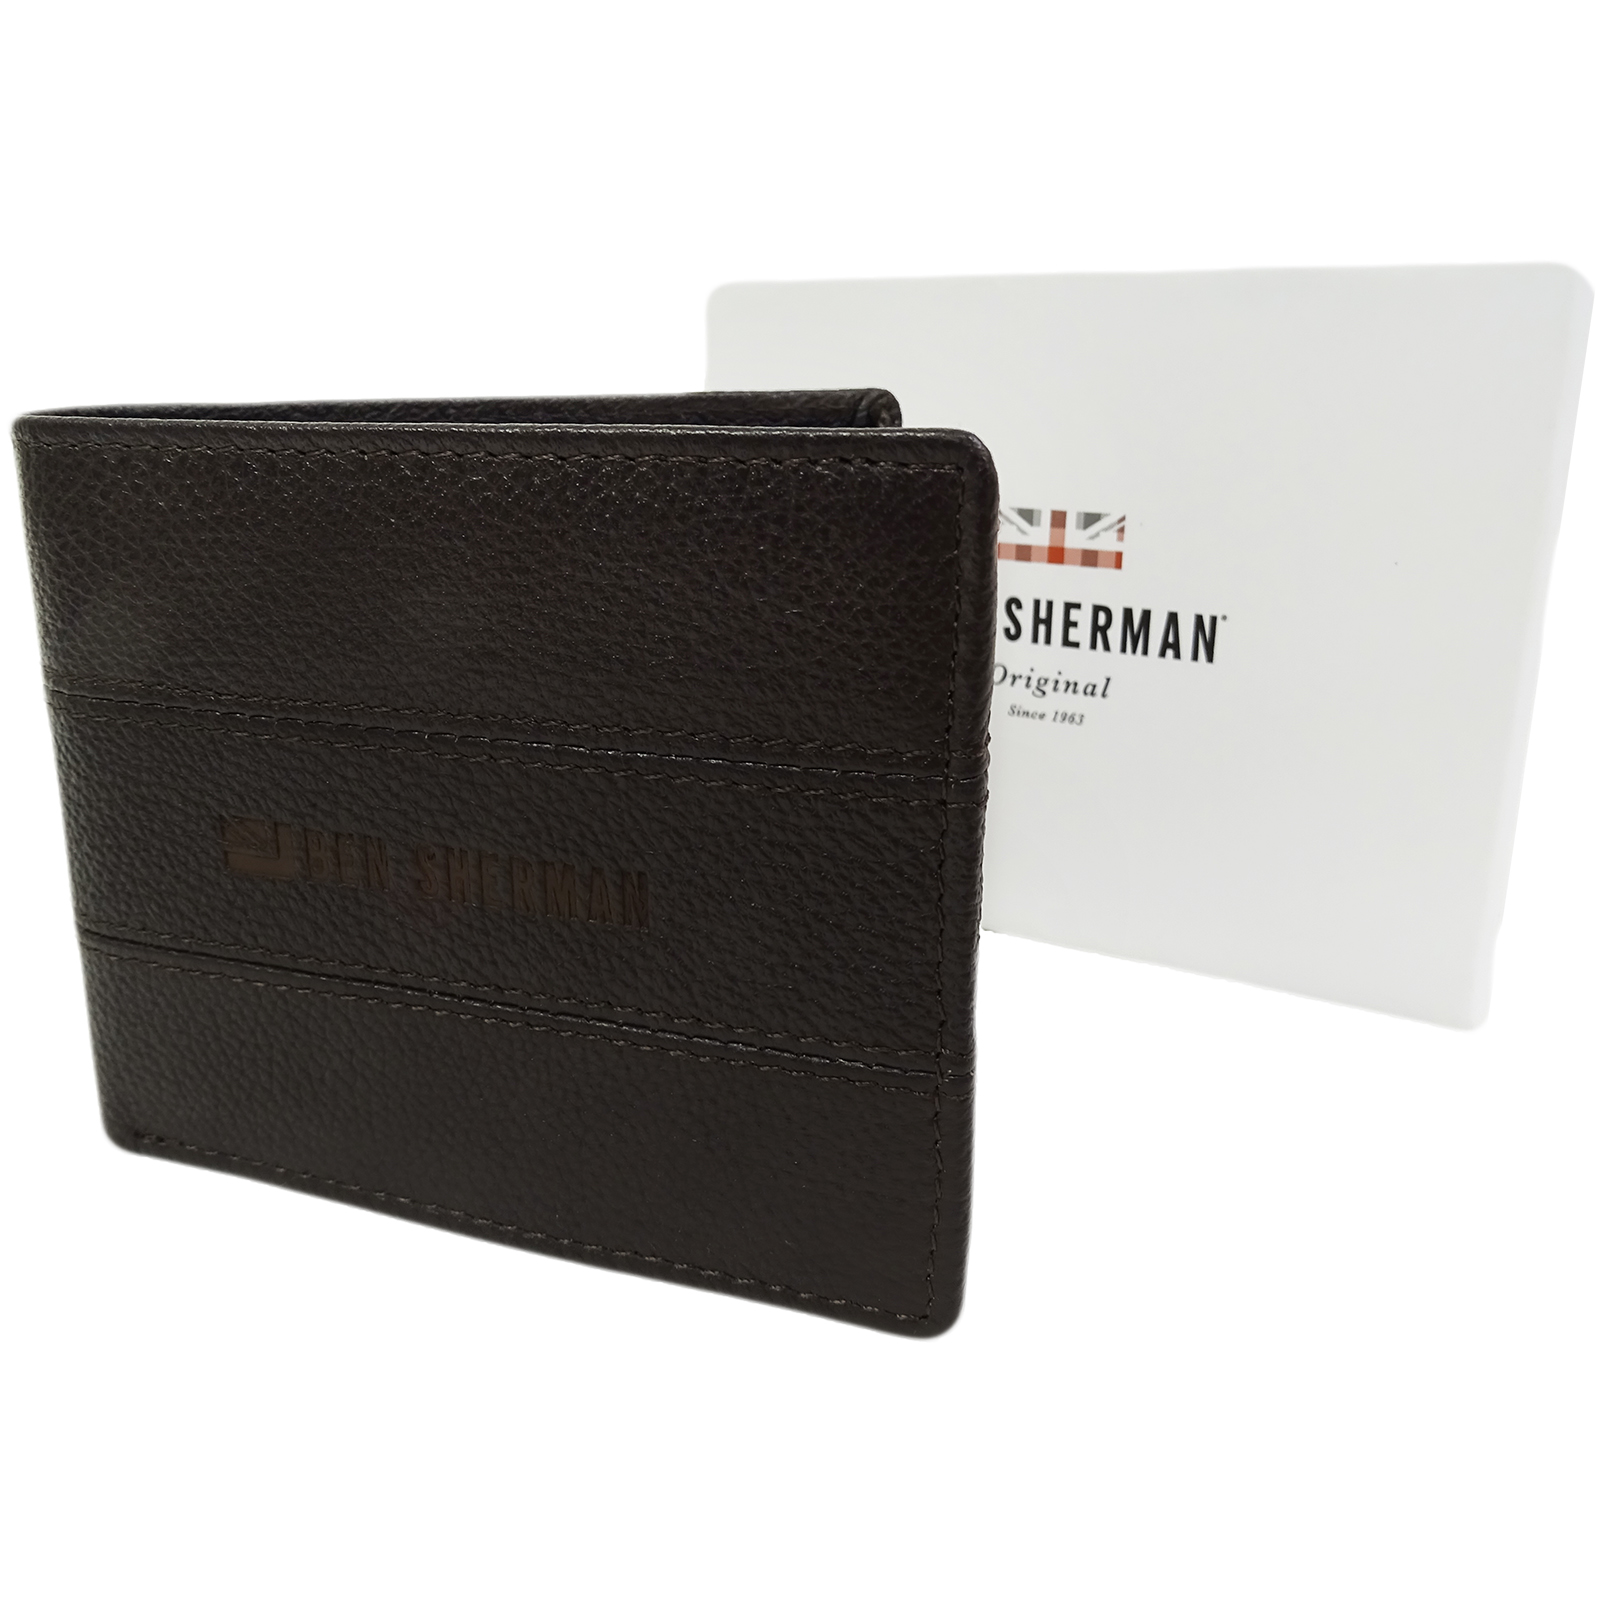 Ben Sherman Brown Leather Wallet - Card And Note Holder  11816